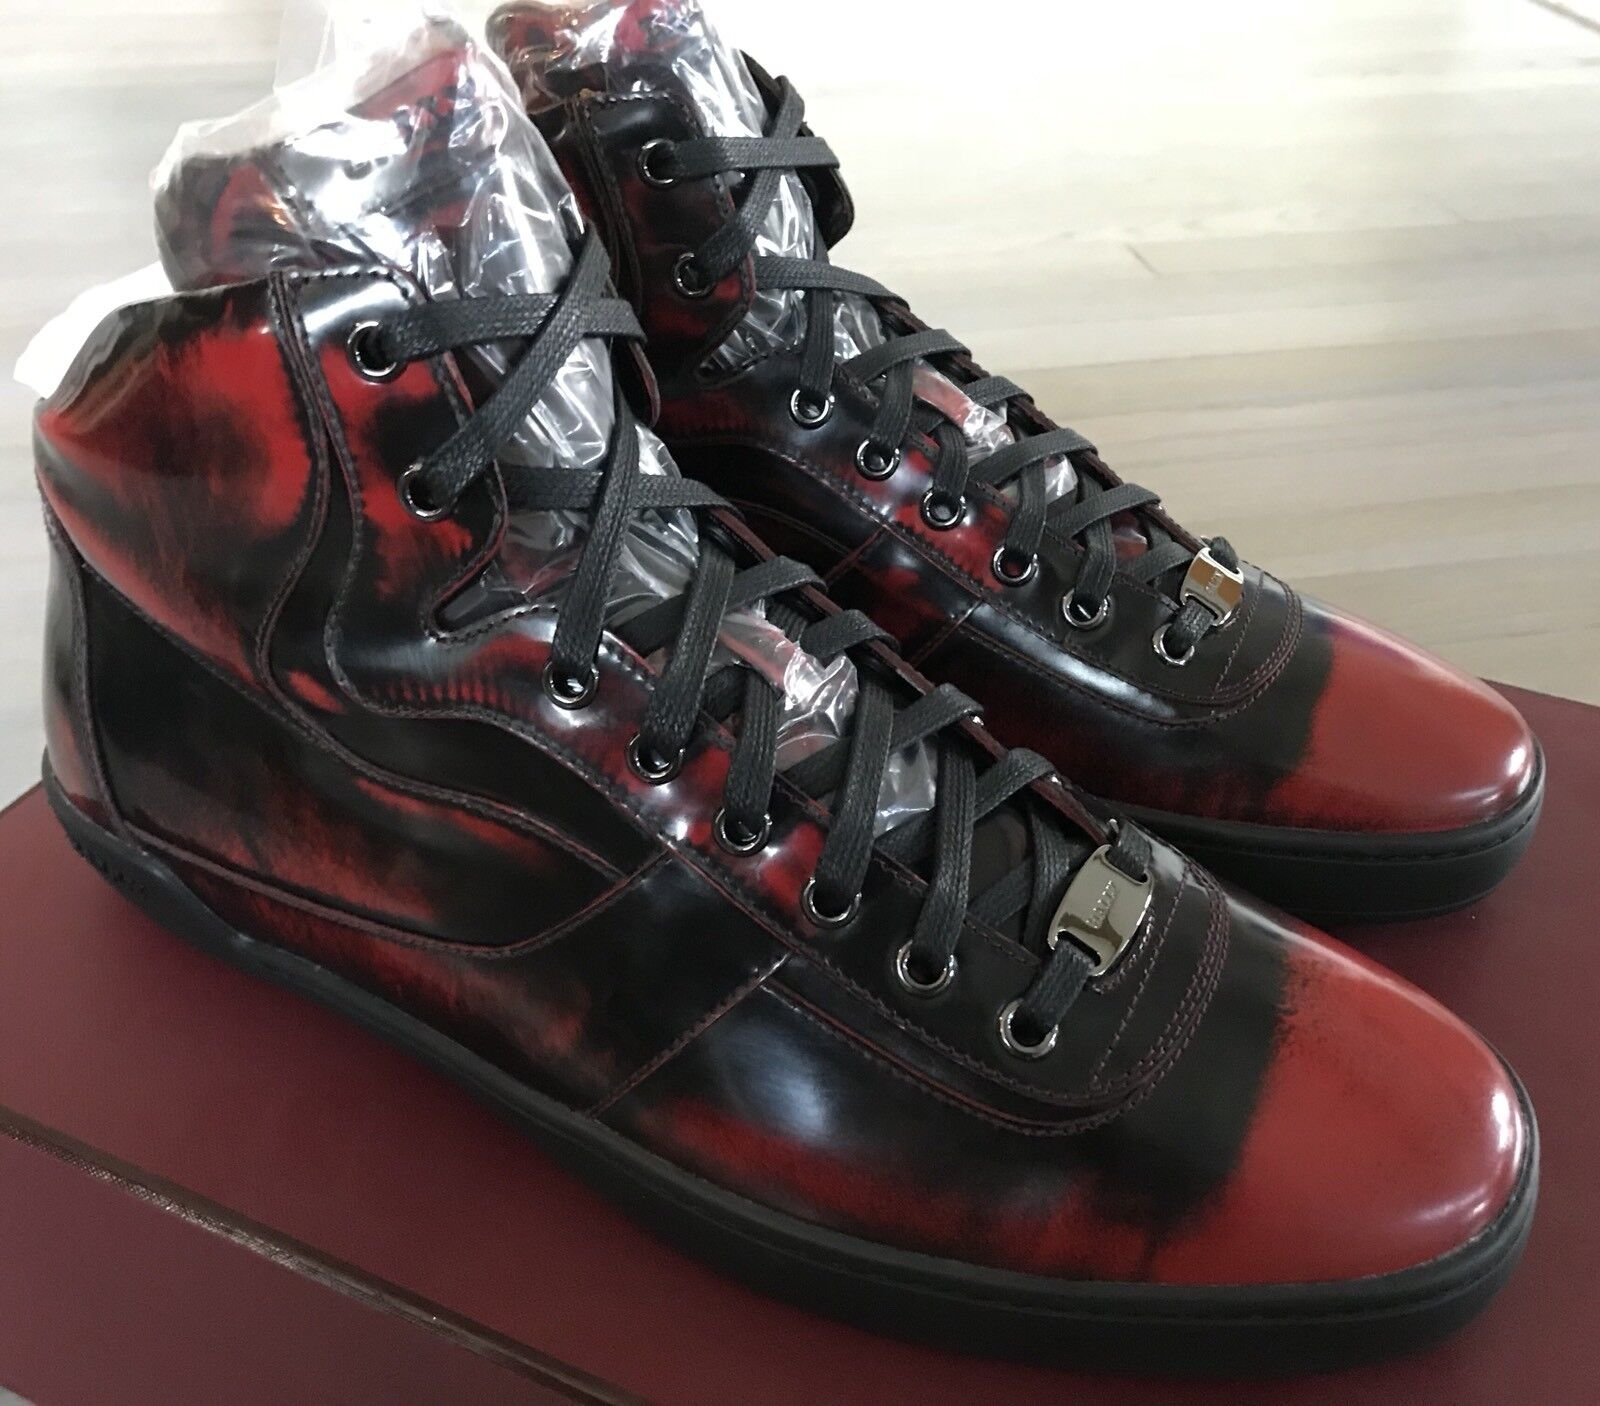 700  Bally Eroy 523 rosso and nero Brushed Brushed Brushed High Tops scarpe da ginnastica Dimensione US 9 d3d0c7